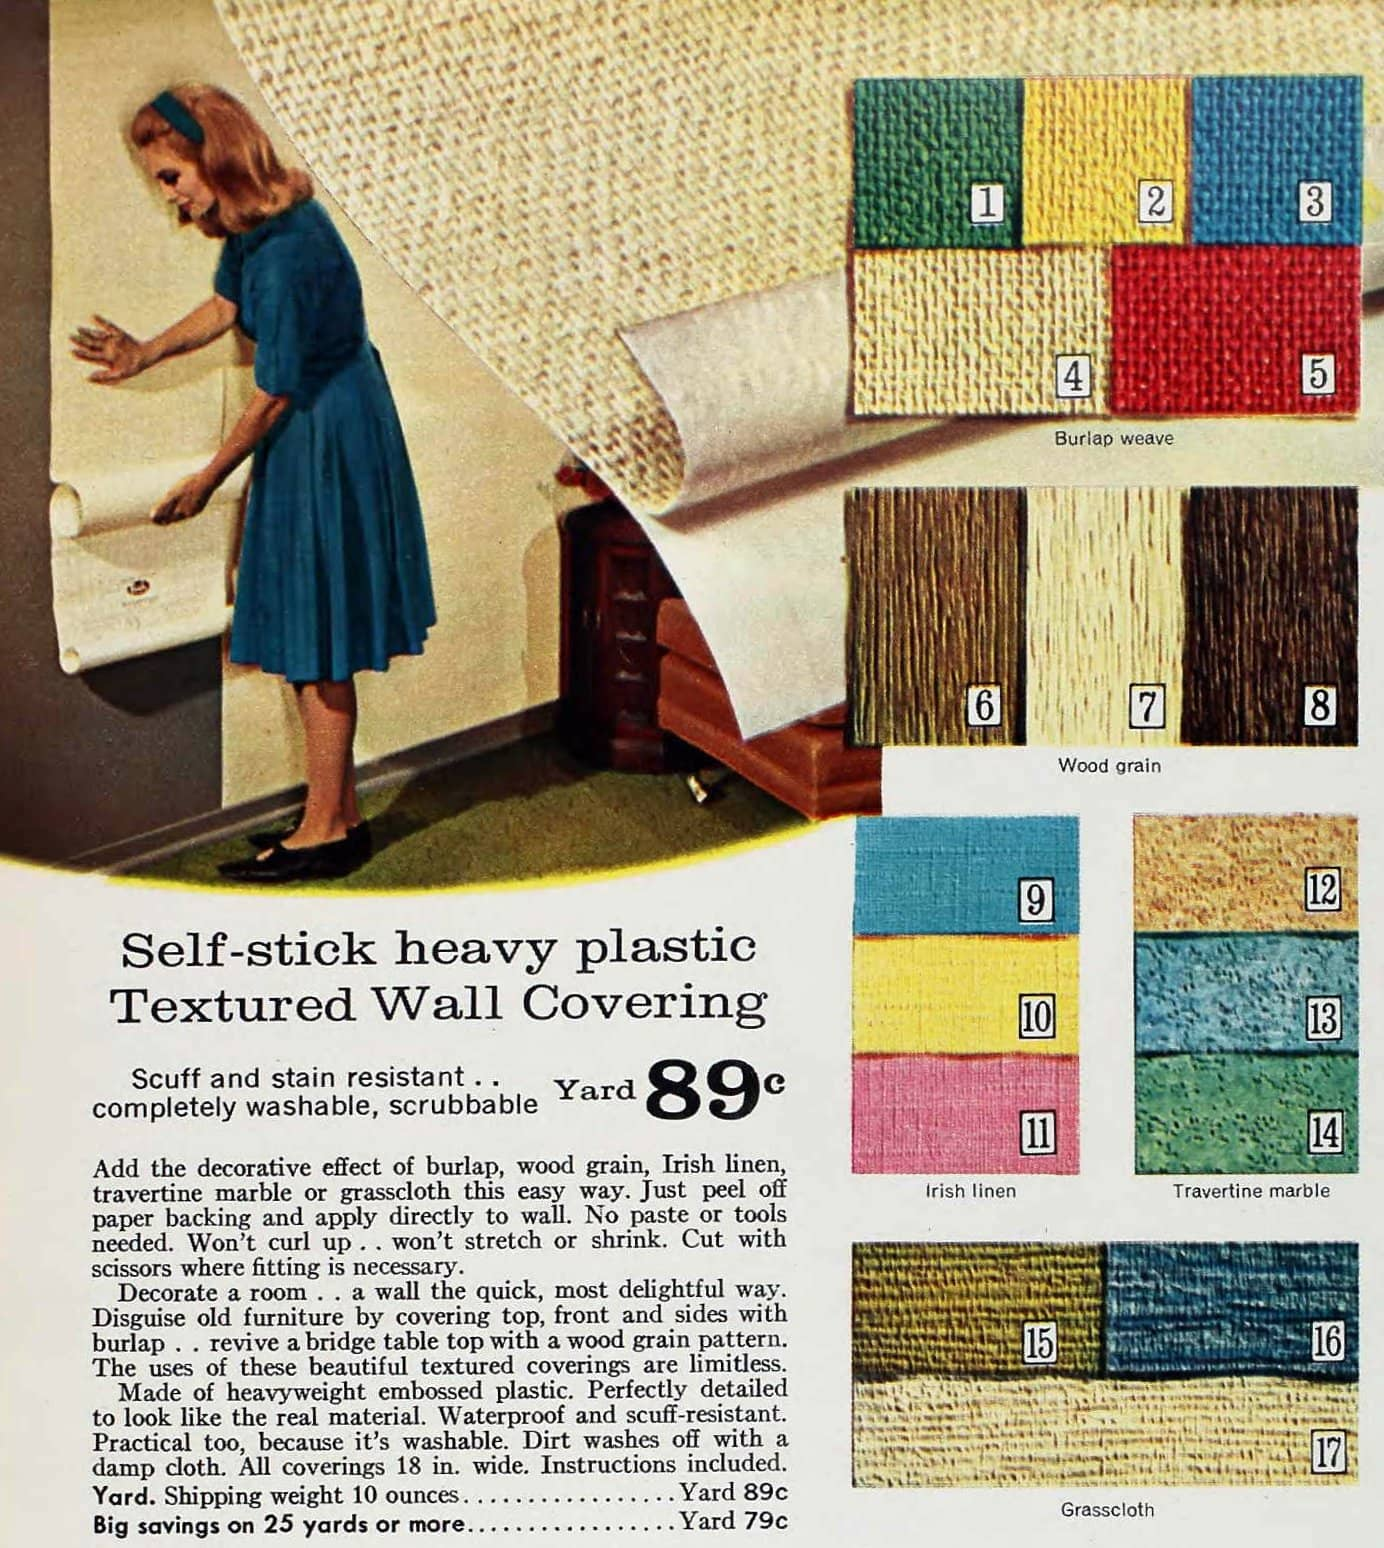 Self-stick heavy plastic textured wallcovering - 1960s wallpaper